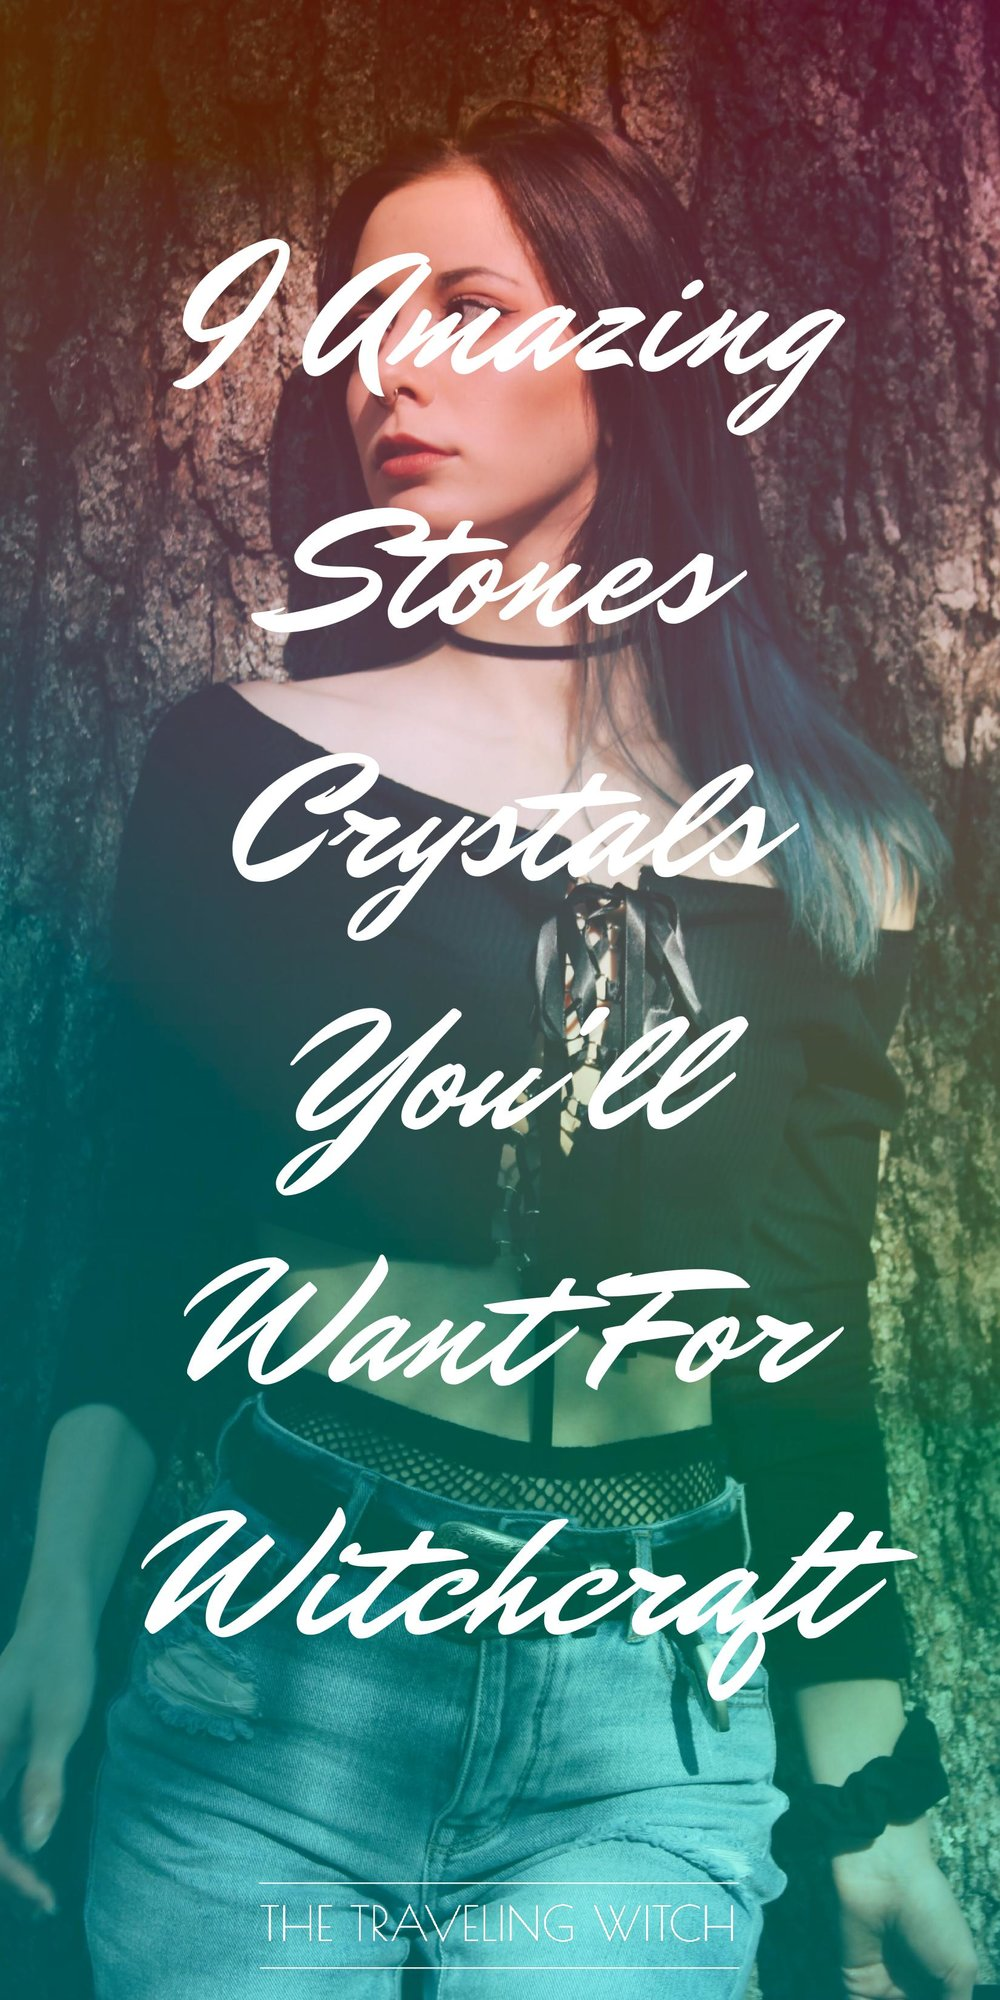 9 Amazing Stones Crystals You'll Want For Witchcraft // Magic // The Traveling Witch